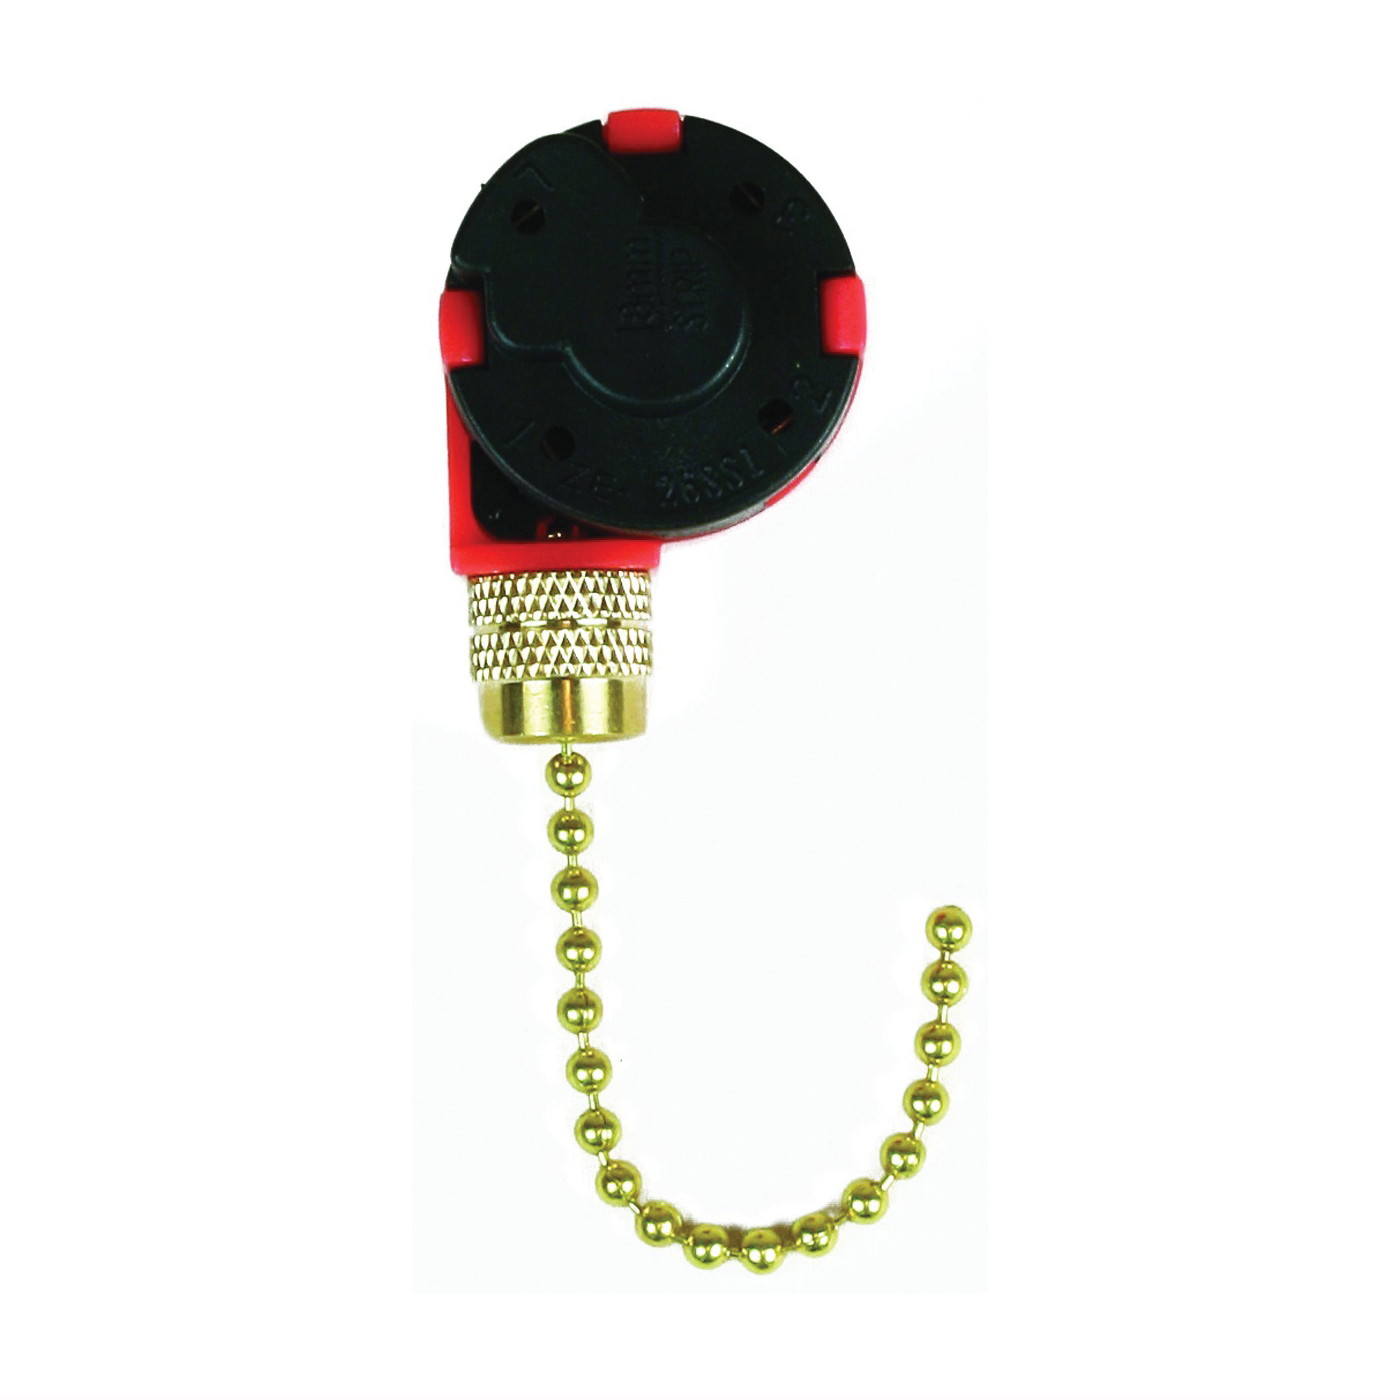 Picture of Jandorf 60303 Pull Chain Switch, 250 V, 3 A, Brass